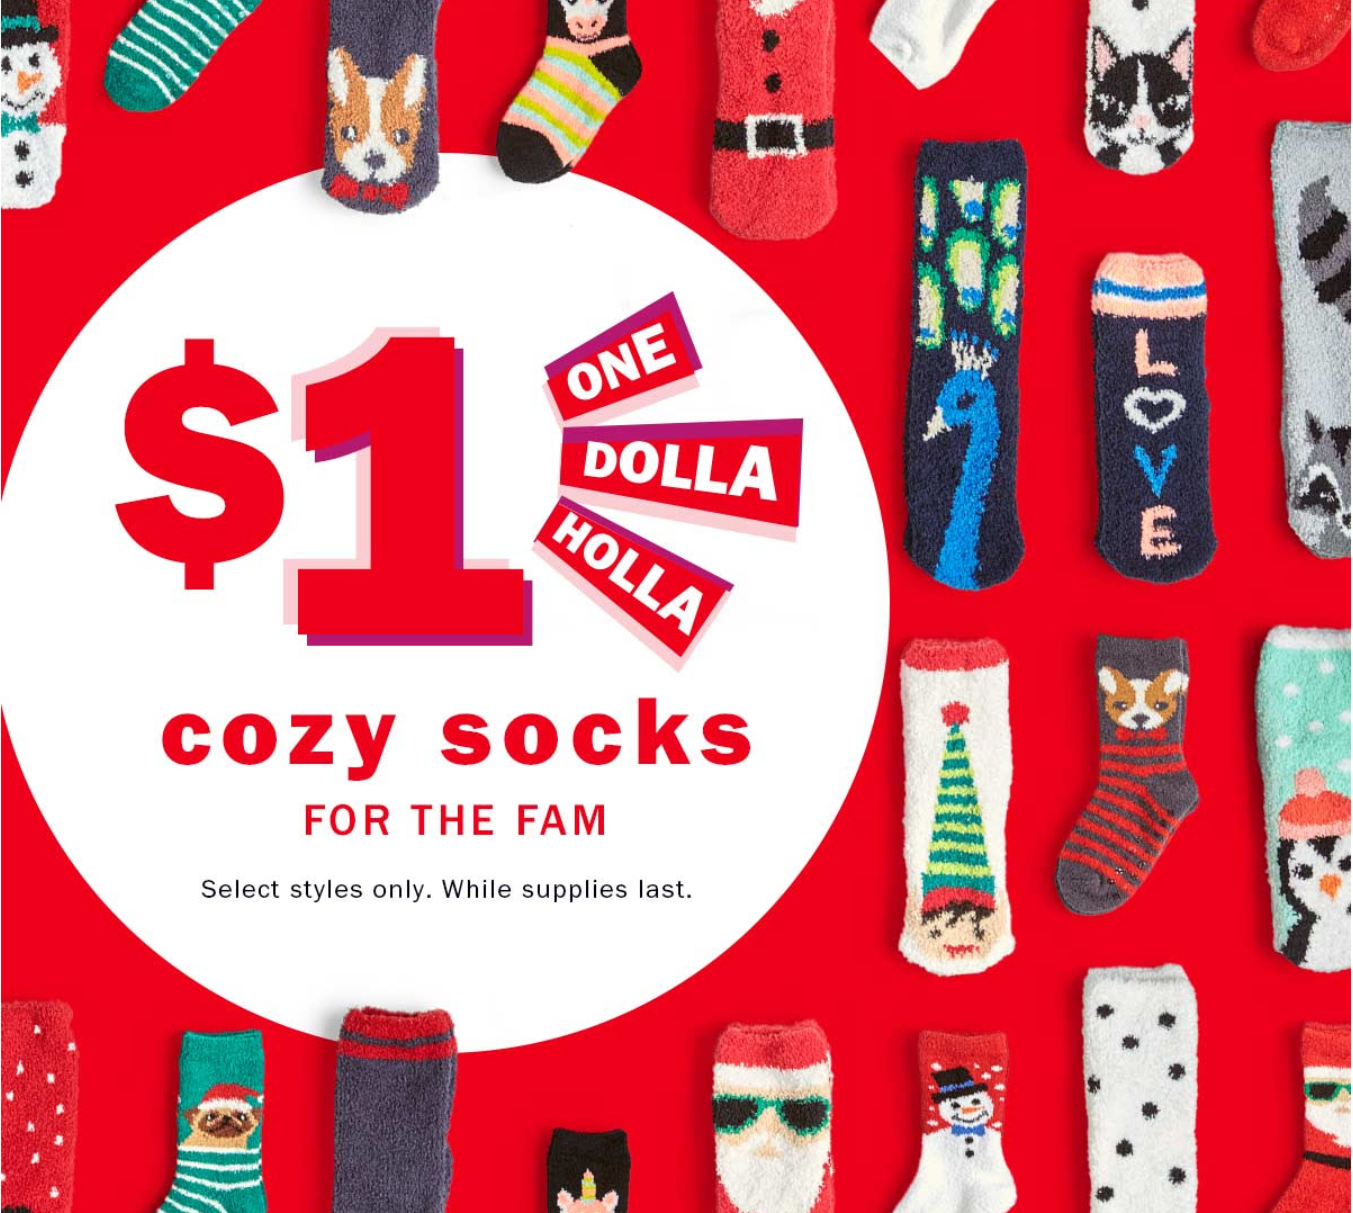 Old Navy: Cozy Socks ONLY $1 + FREE Lyft Ride for In-store Pick-up (12/22 ONLY)